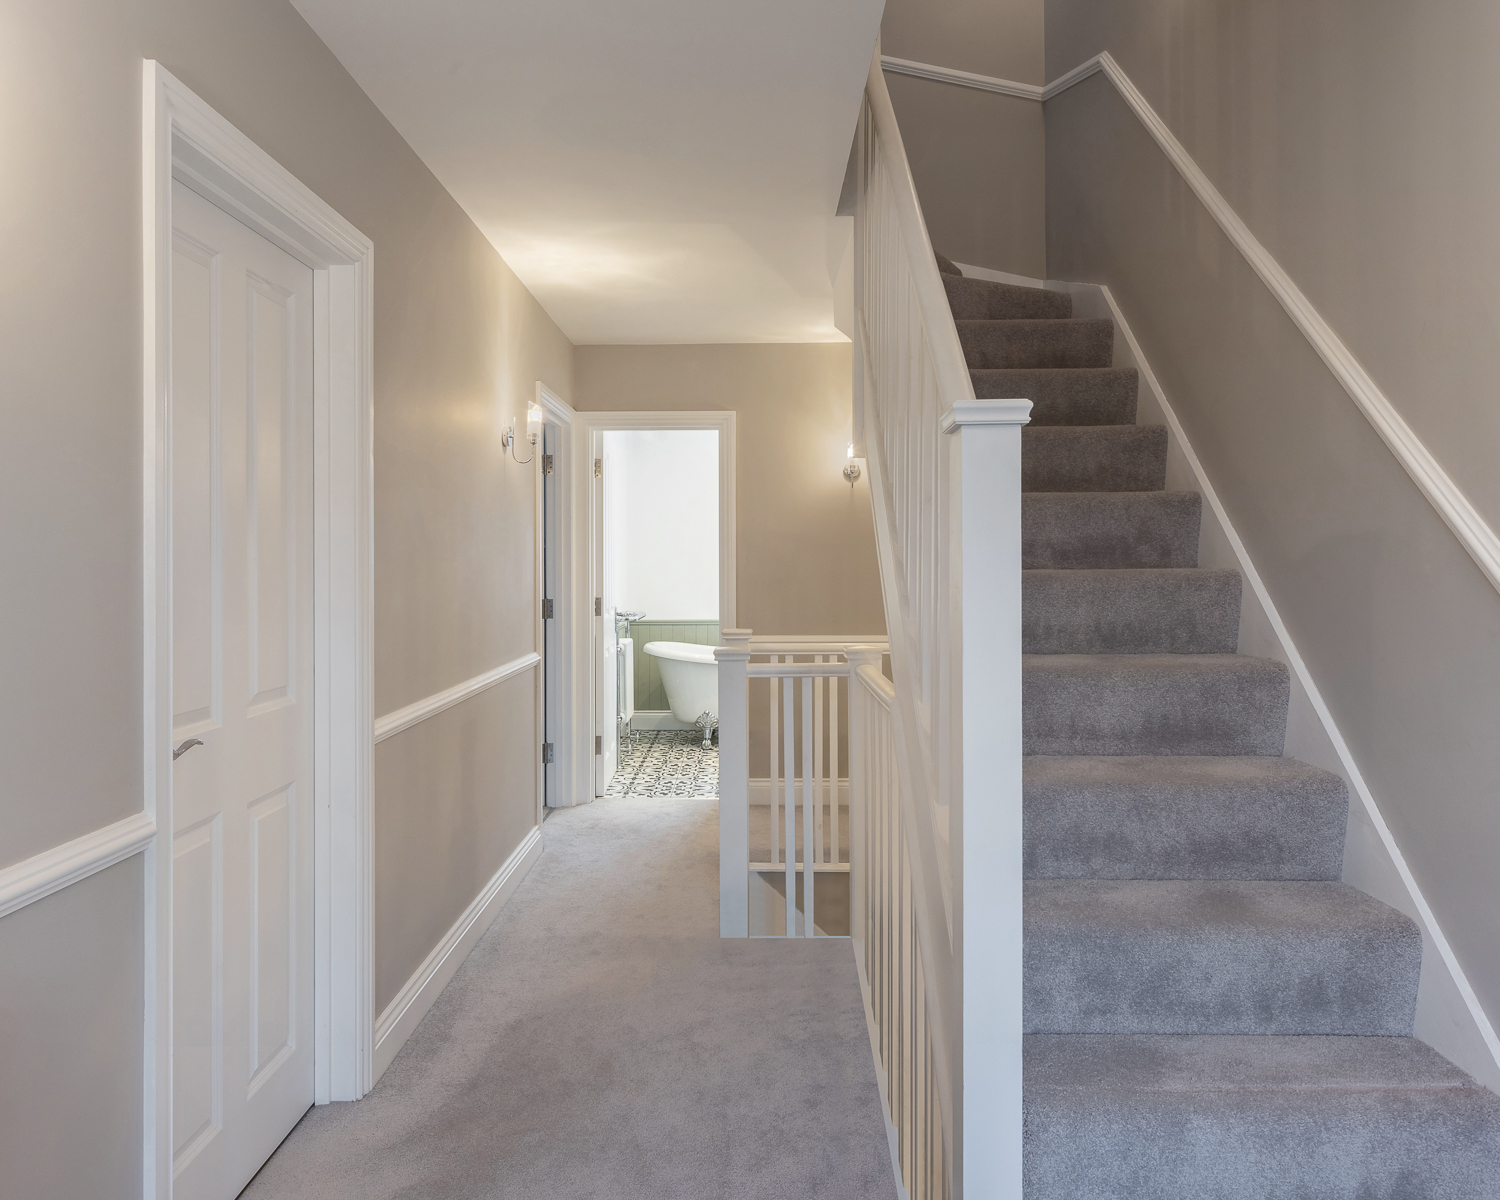 St Albans House staircase